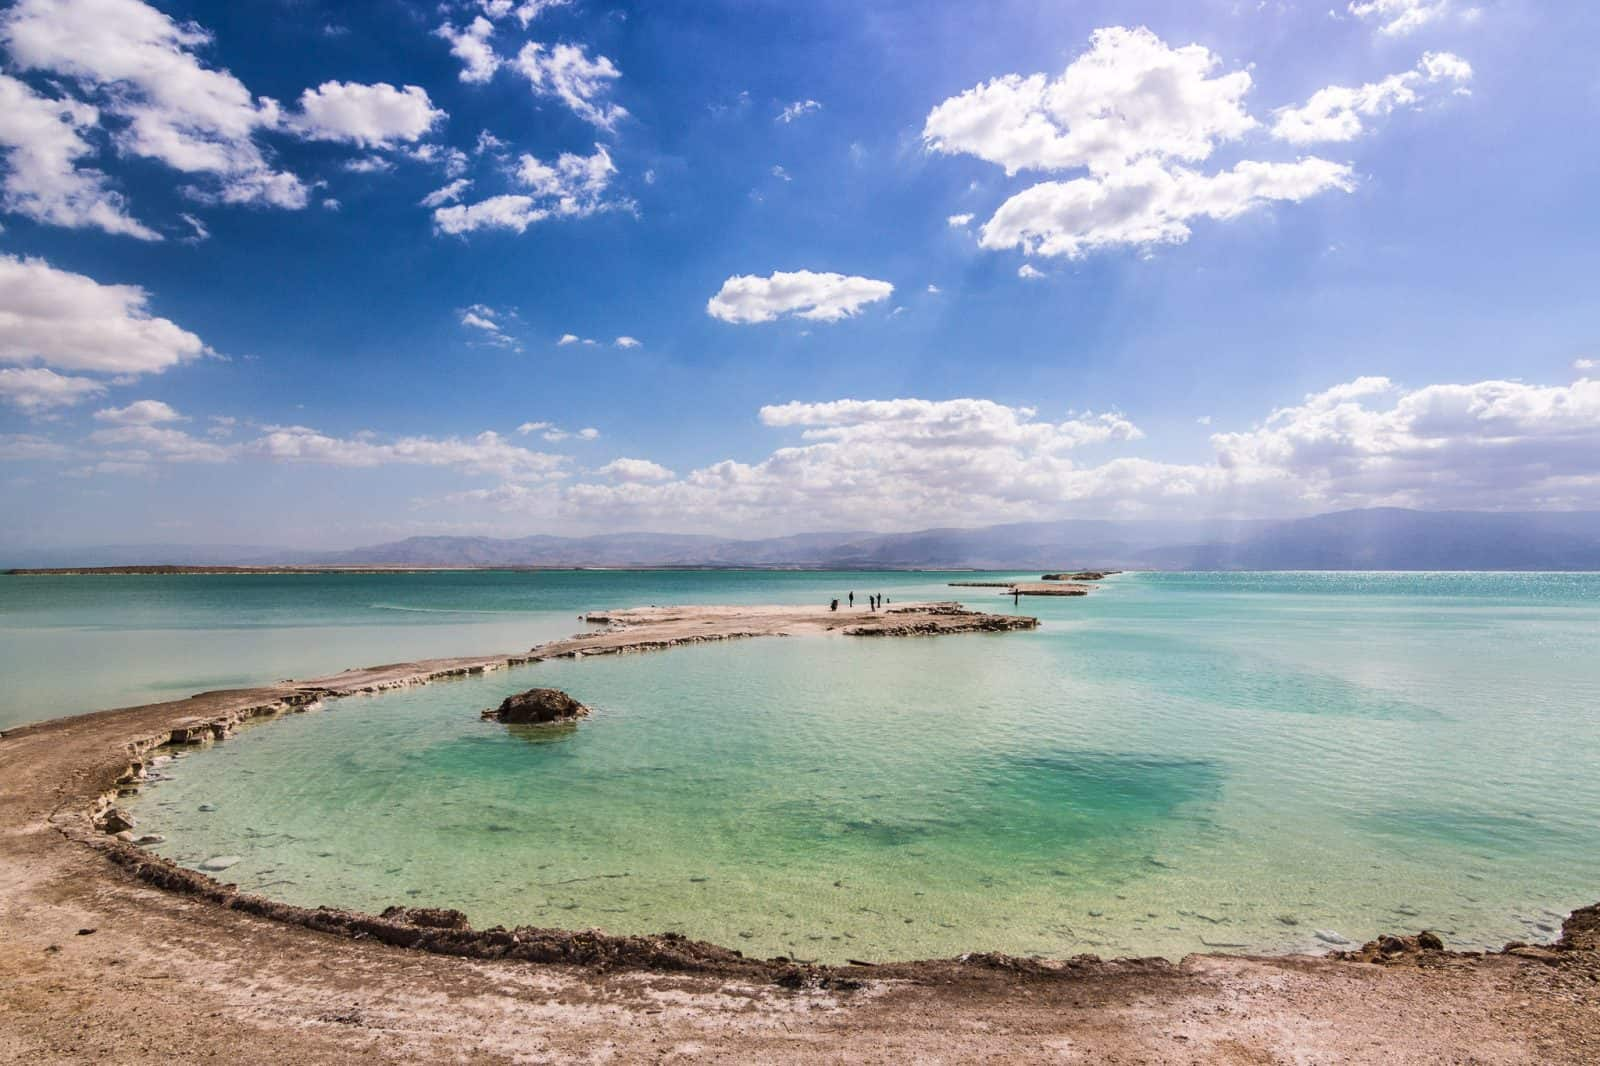 Salt formations at the southern Dead Sea